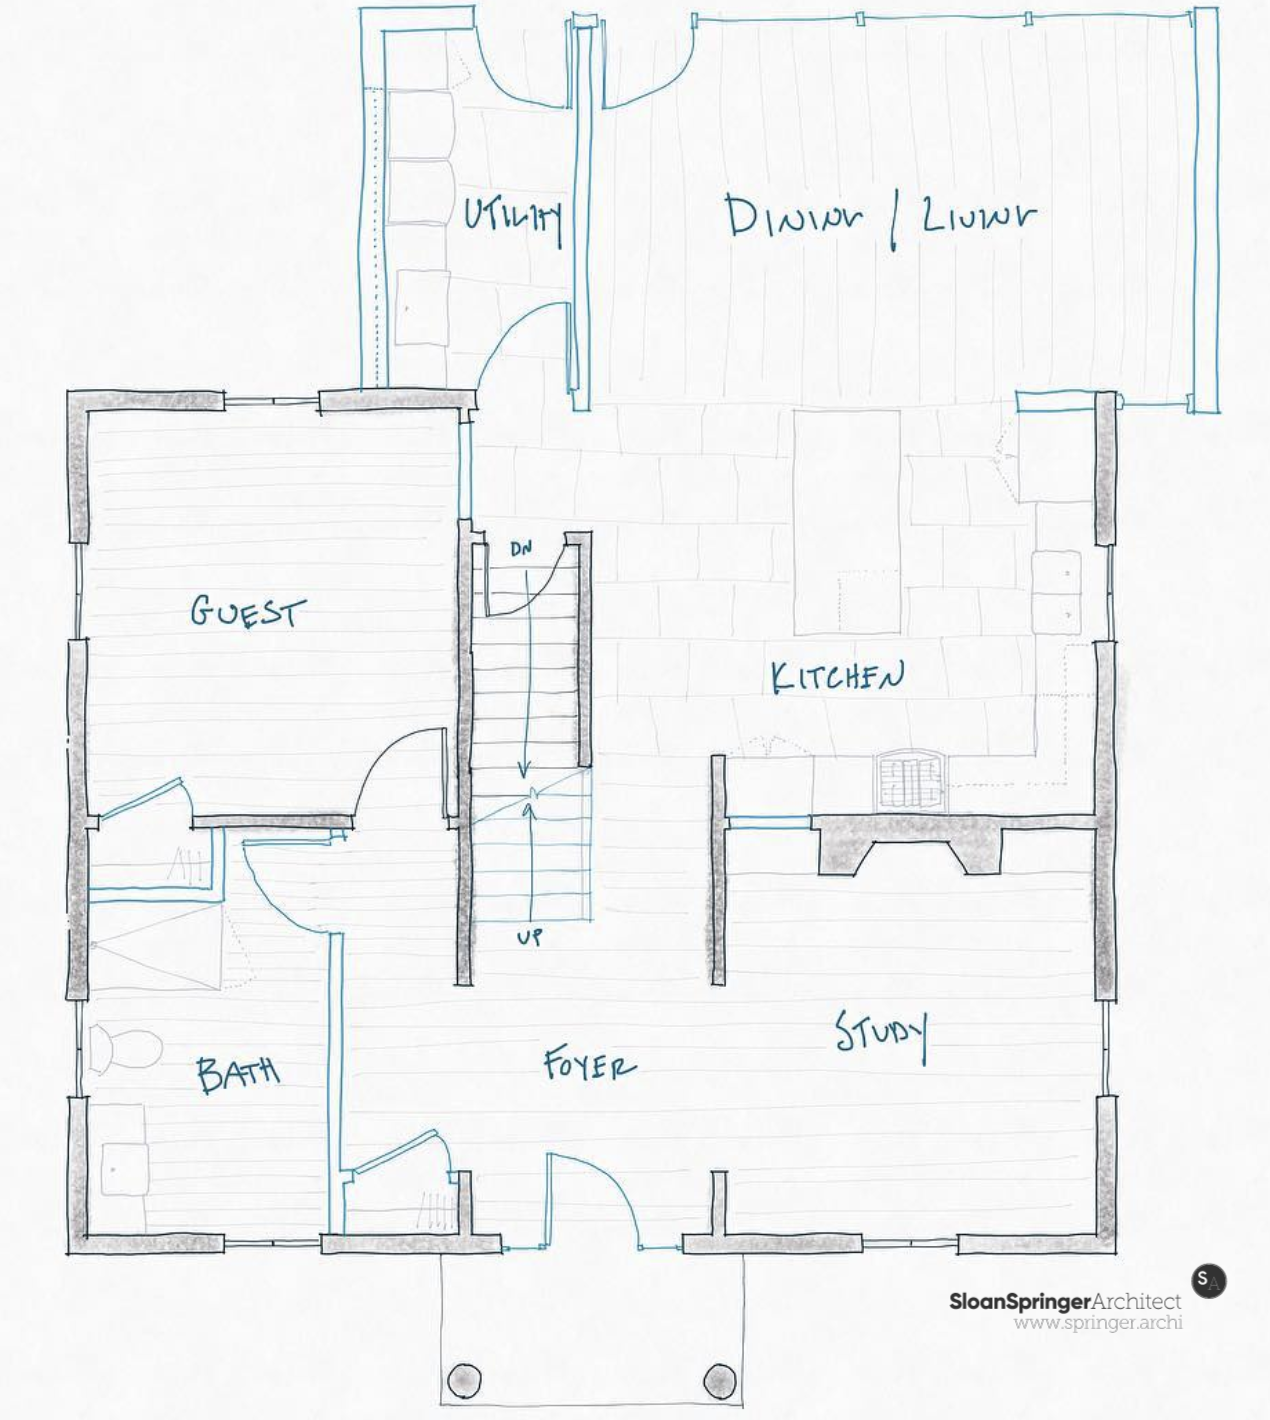 Home Additions Plan Drawings: Home Addition Plan Sketch